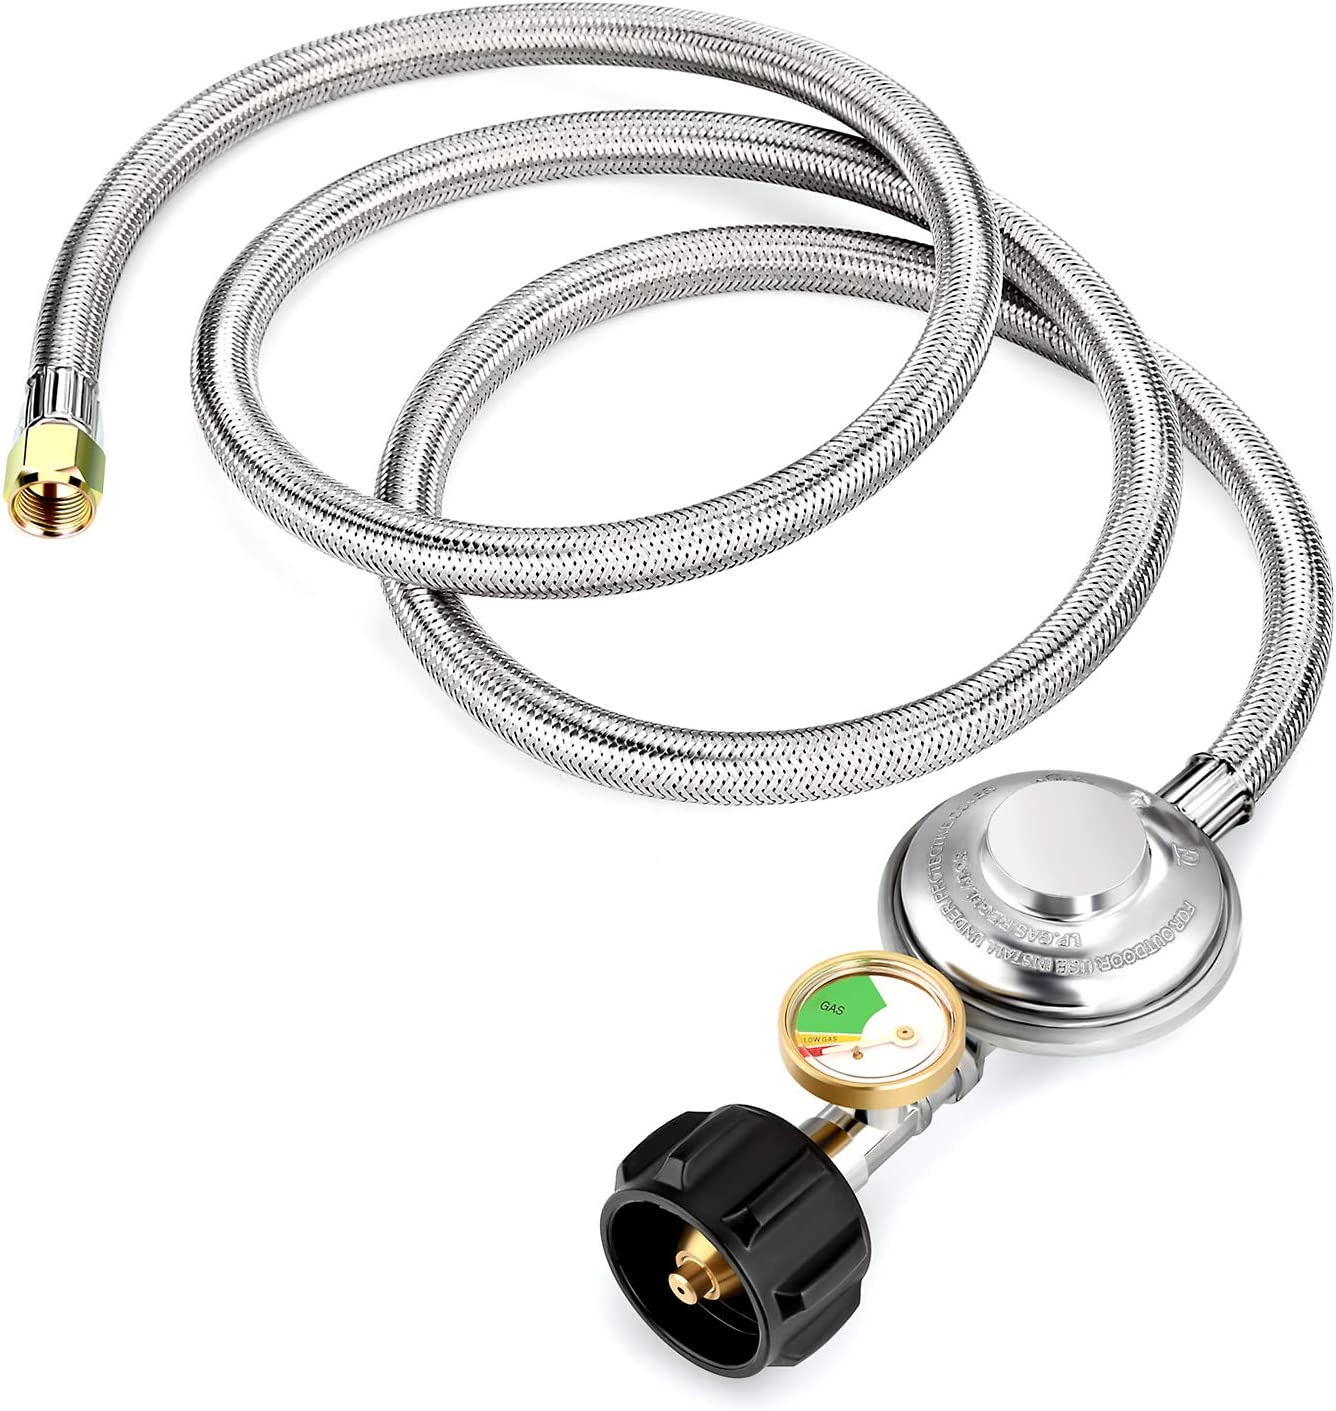 WADEO 5ft Stainless Braided Propane Regulator Hose with Gauge, Stainless Low Pressure Propane Regulator for Burner Stove, Gas Water Heater, Forced Air Heater, Smoker, Burner Stove, Fire Pit